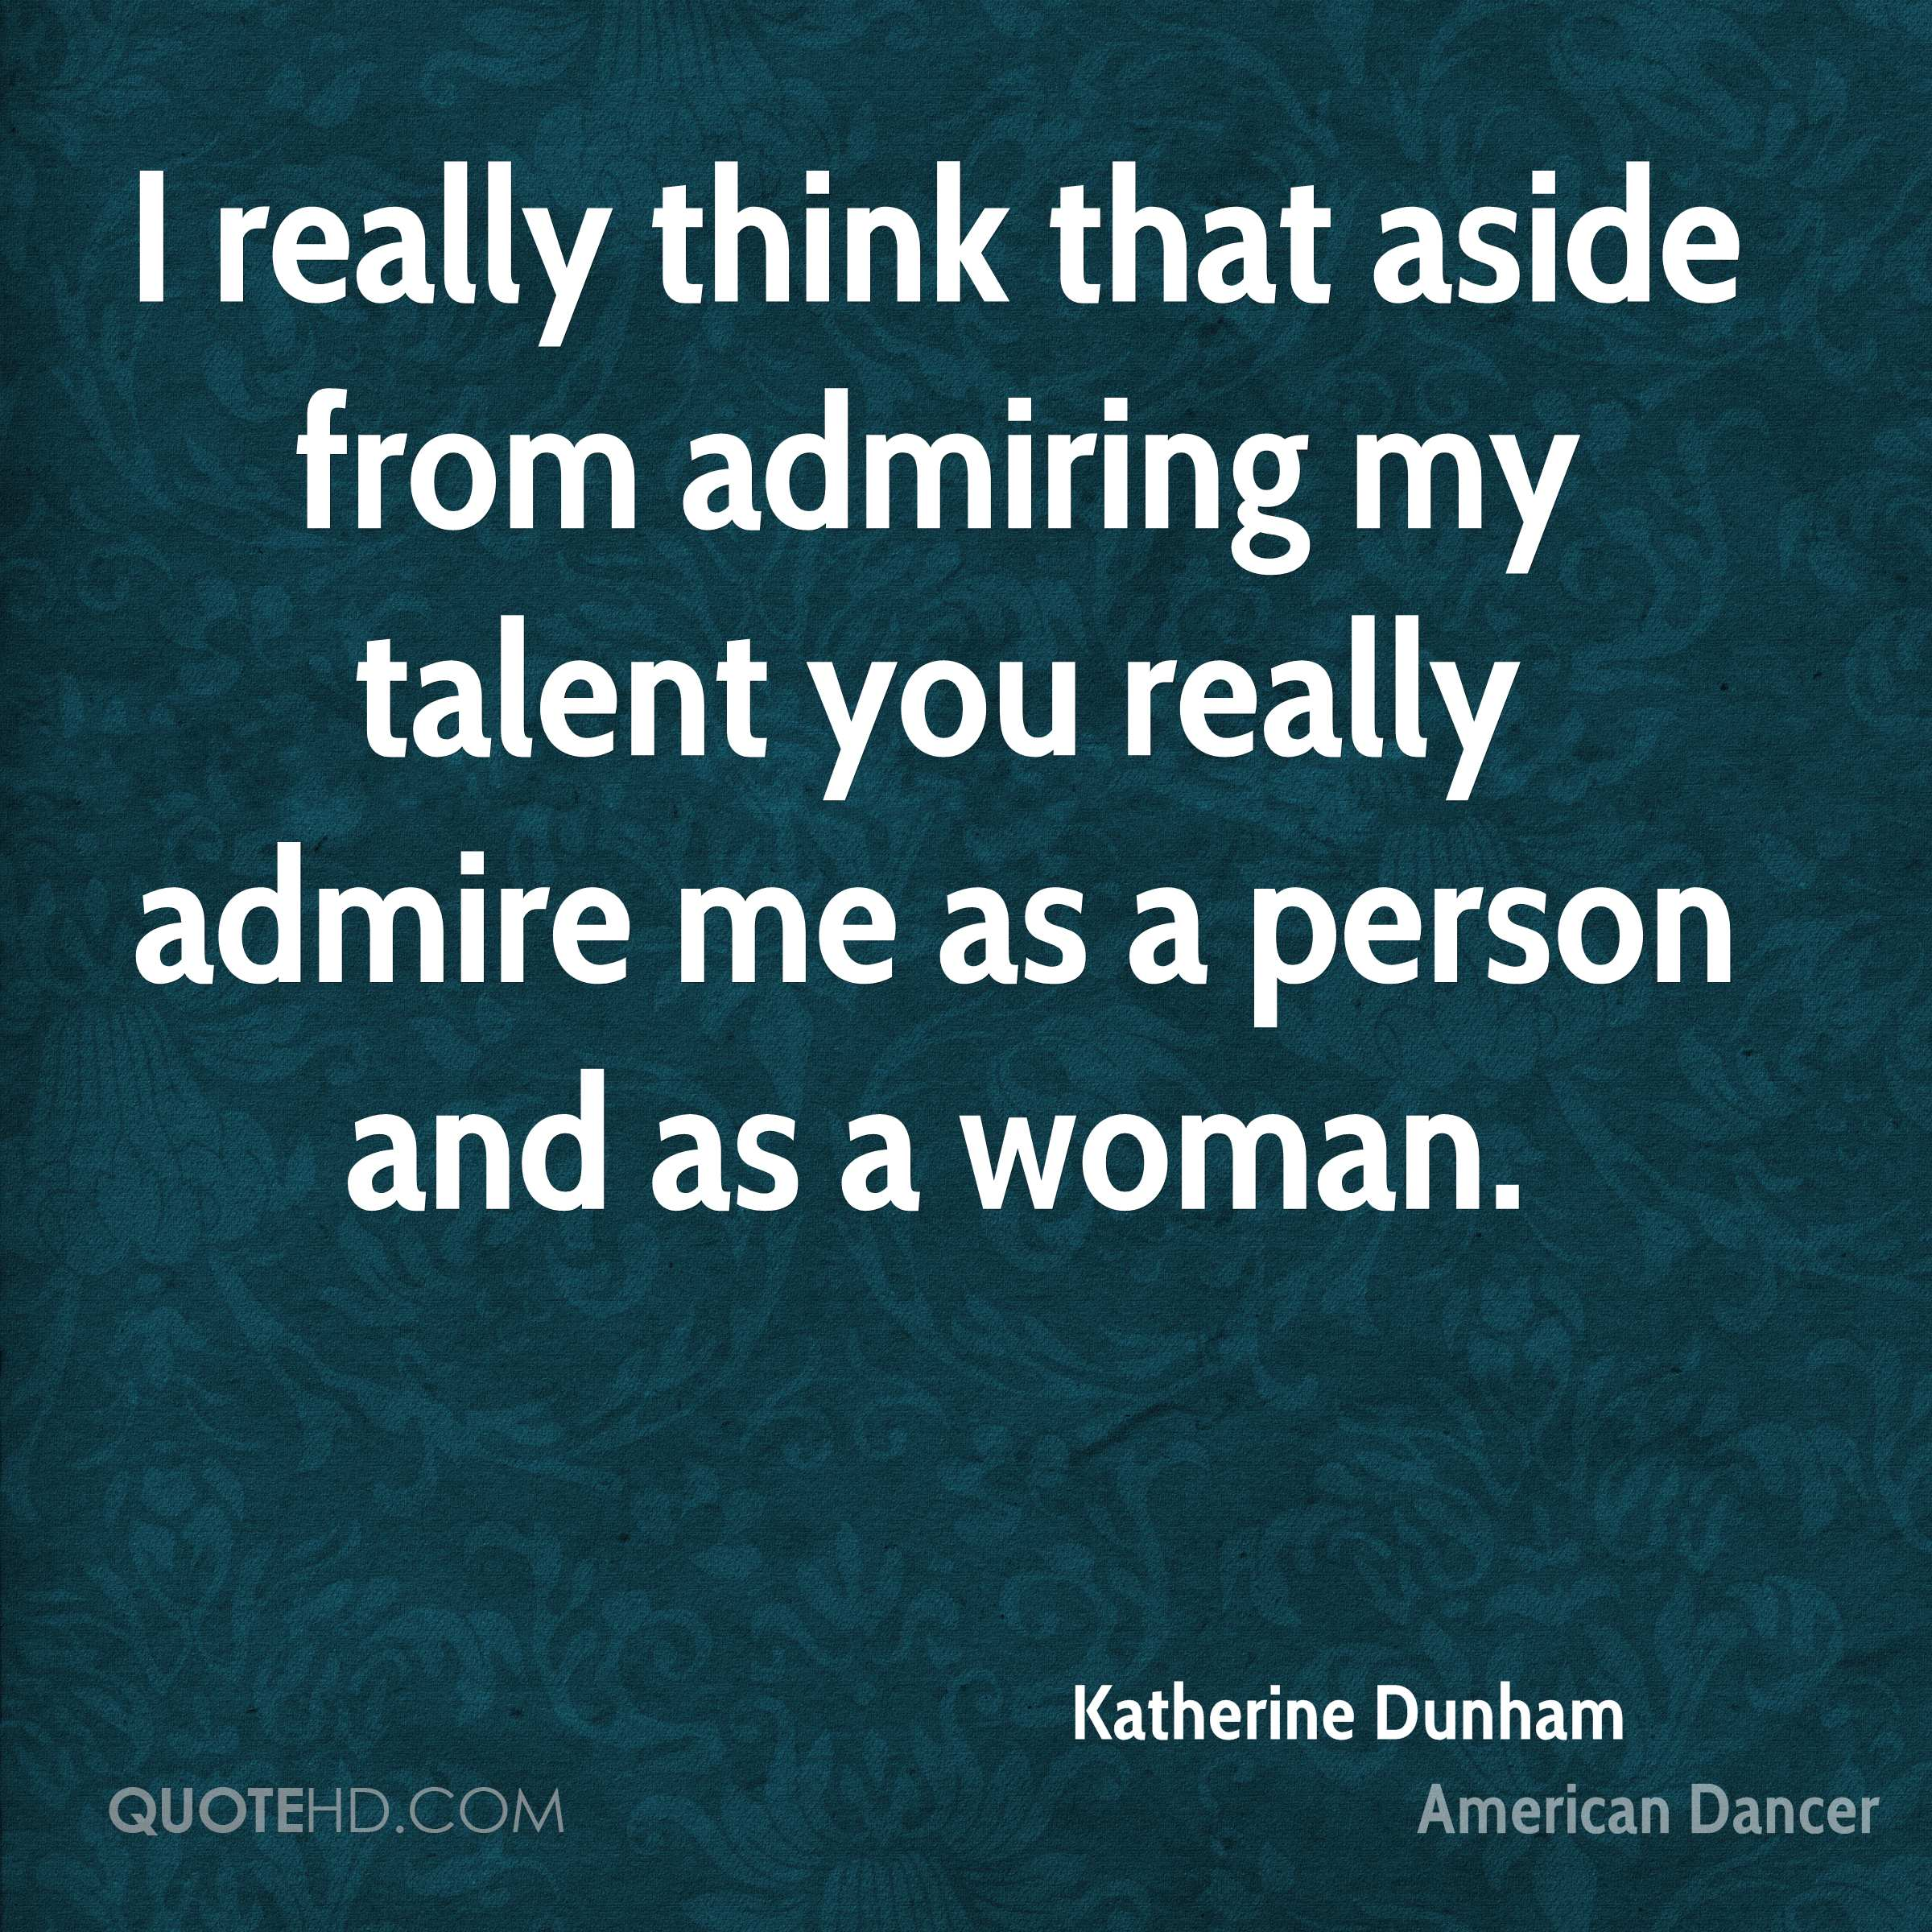 I really think that aside from admiring my talent you really admire me as a person and as a woman.